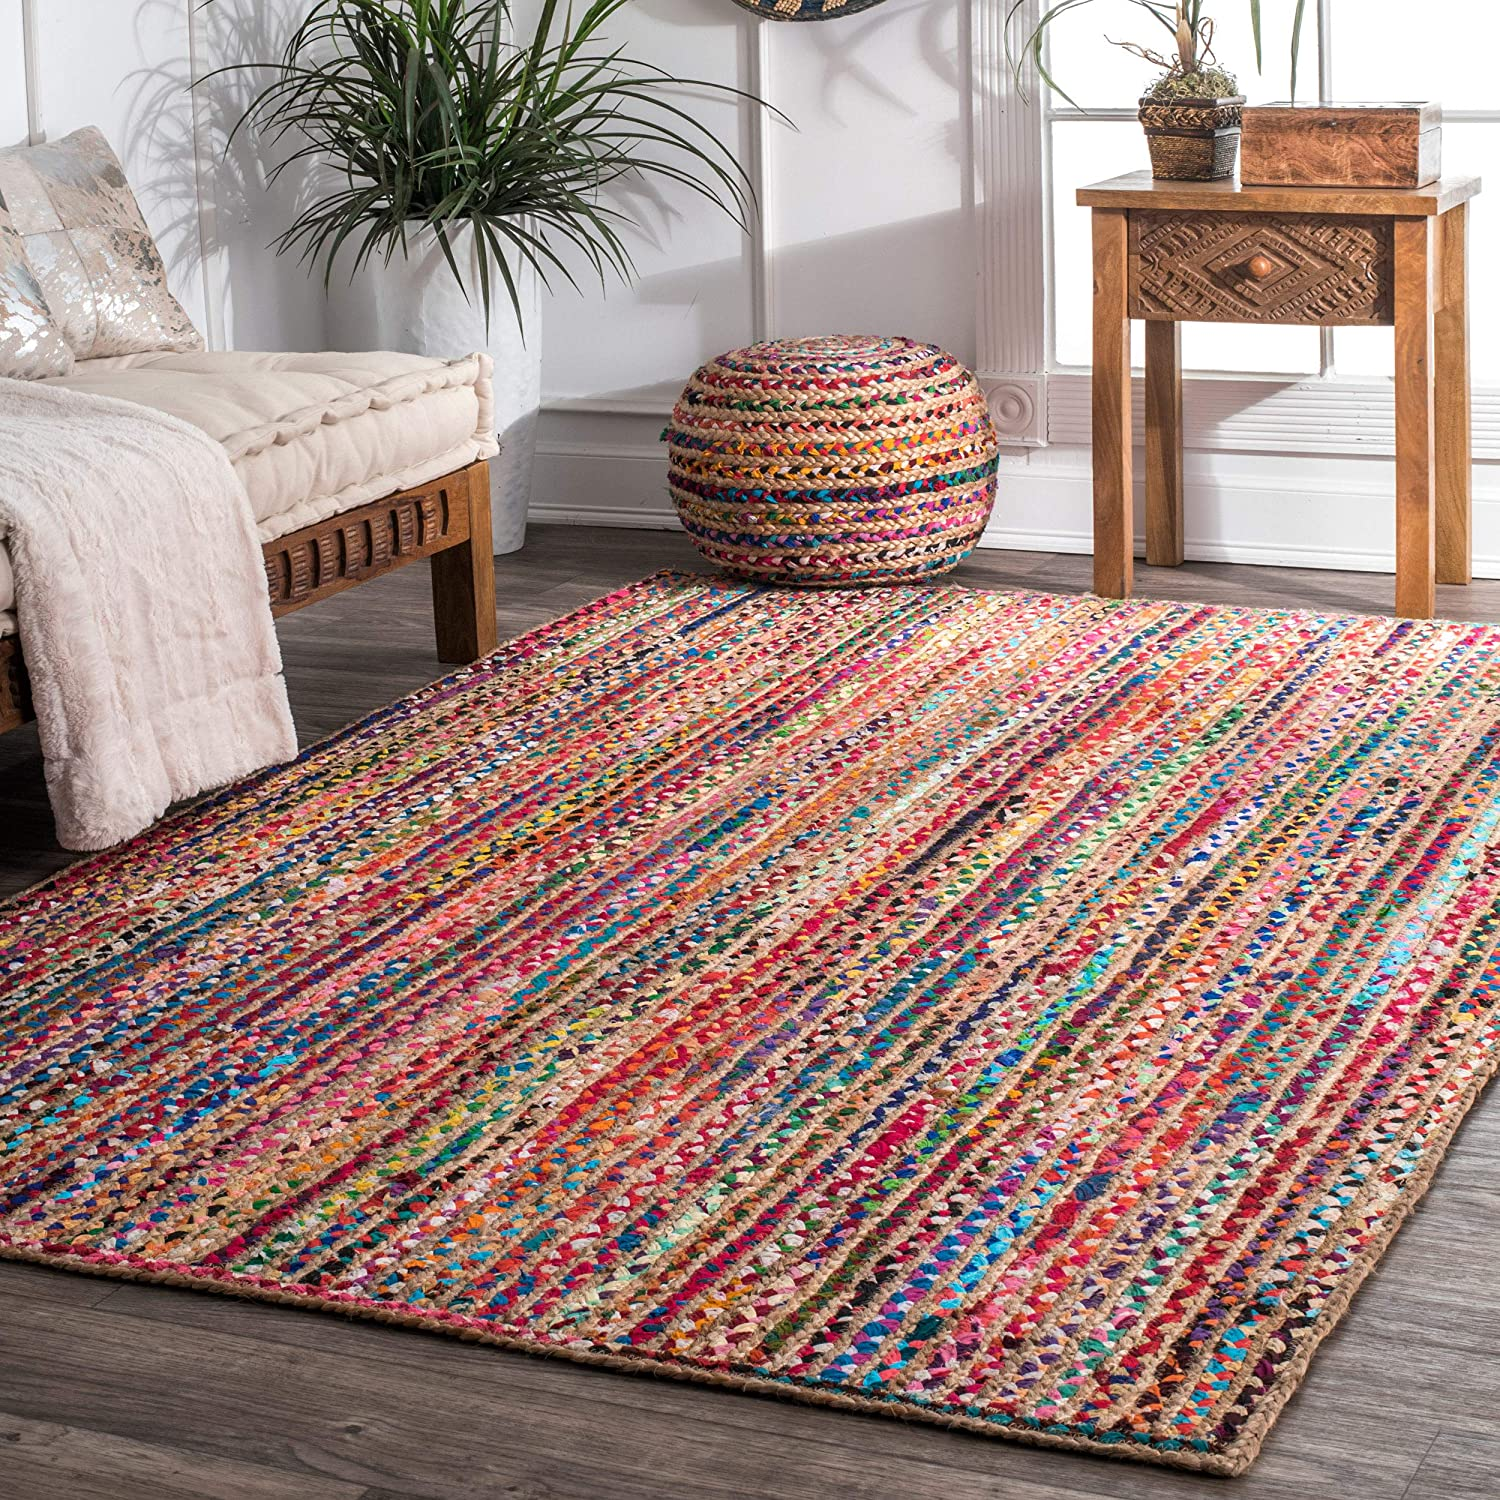 nuLOOM Aleen Braided Cotton/ Jute Rug, 5' x 8', Multi